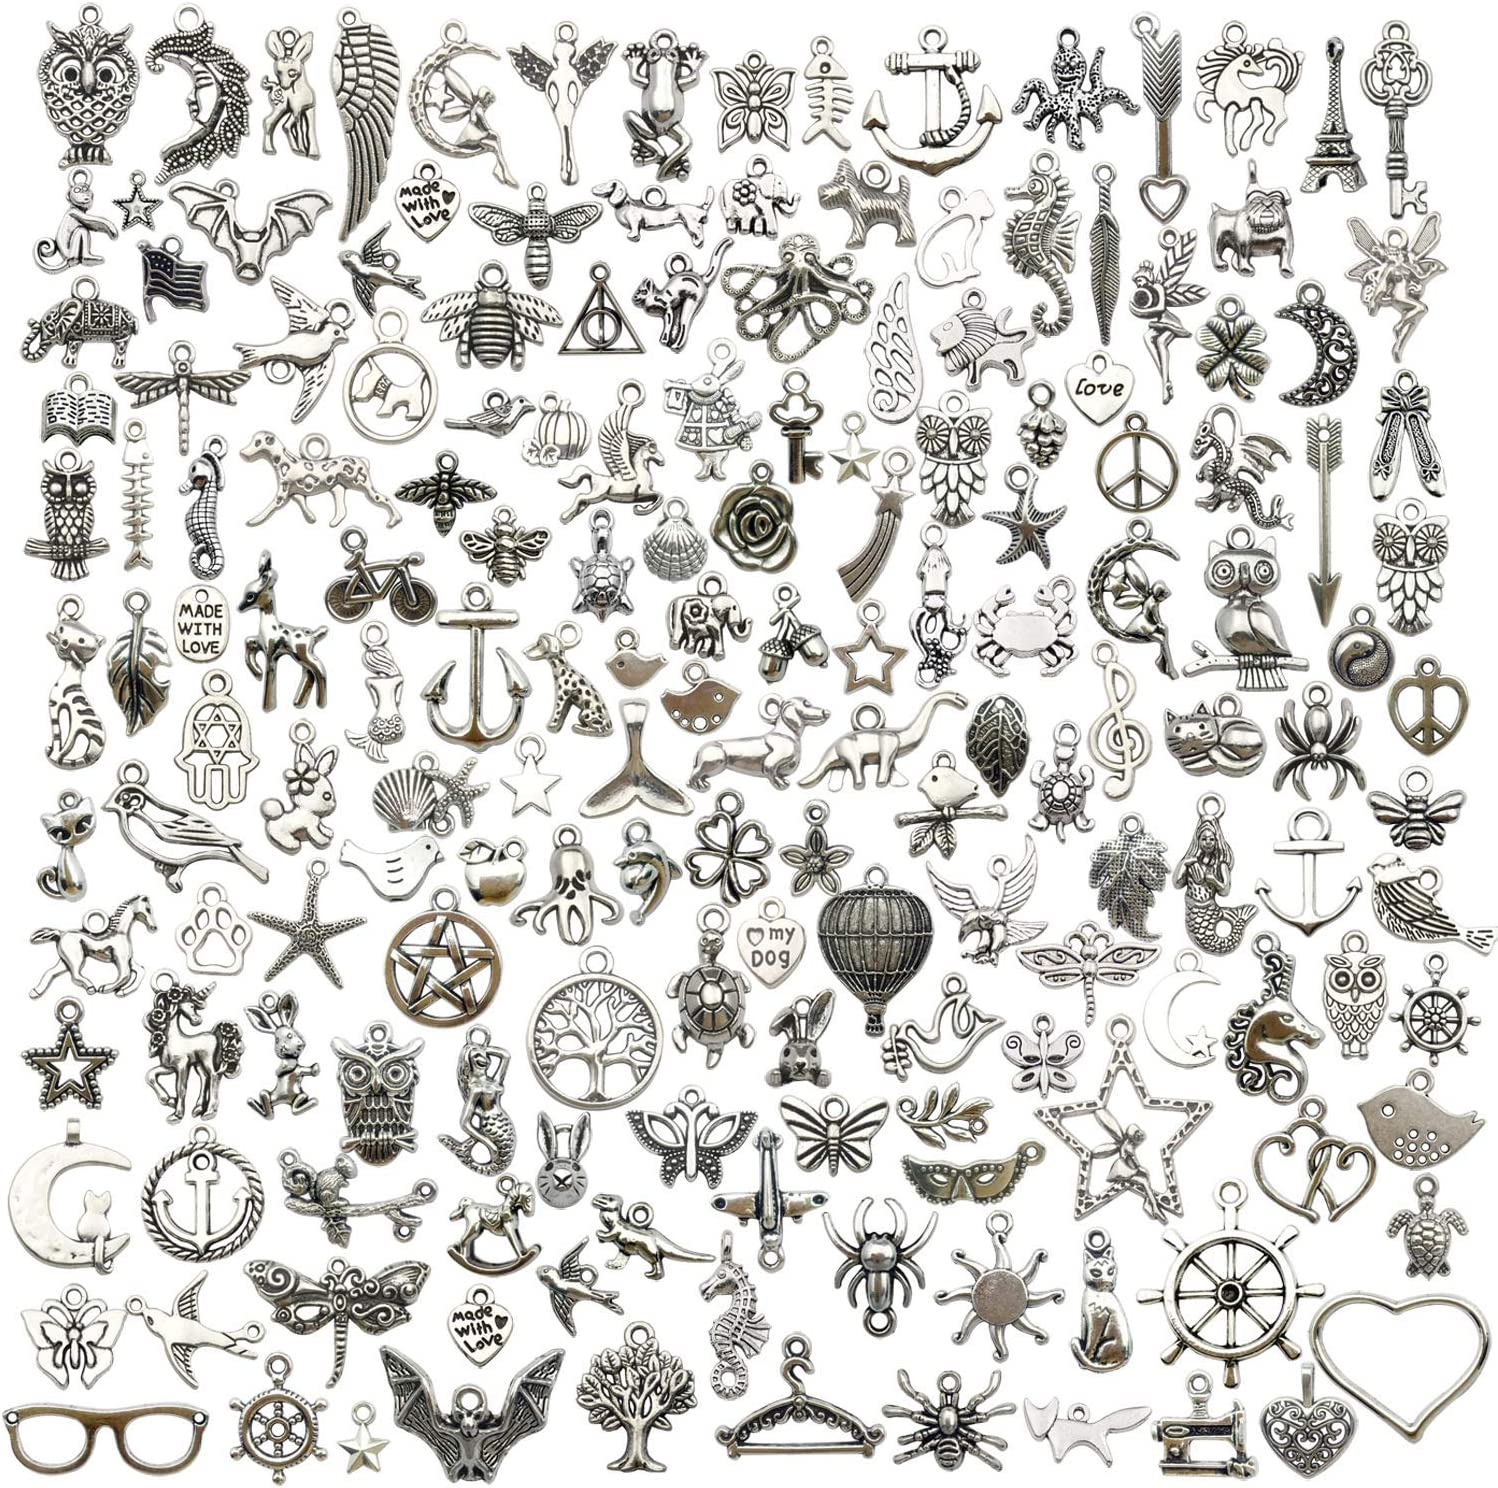 iloveDIYbeads 200 pcs Wholesale Bulk Lots Jewelry Making Charms Mixed Smooth Tibetan Silver Metal Charms Pendants DIY for Jewelry Making Necklace Bracelet and Crafting (M332)